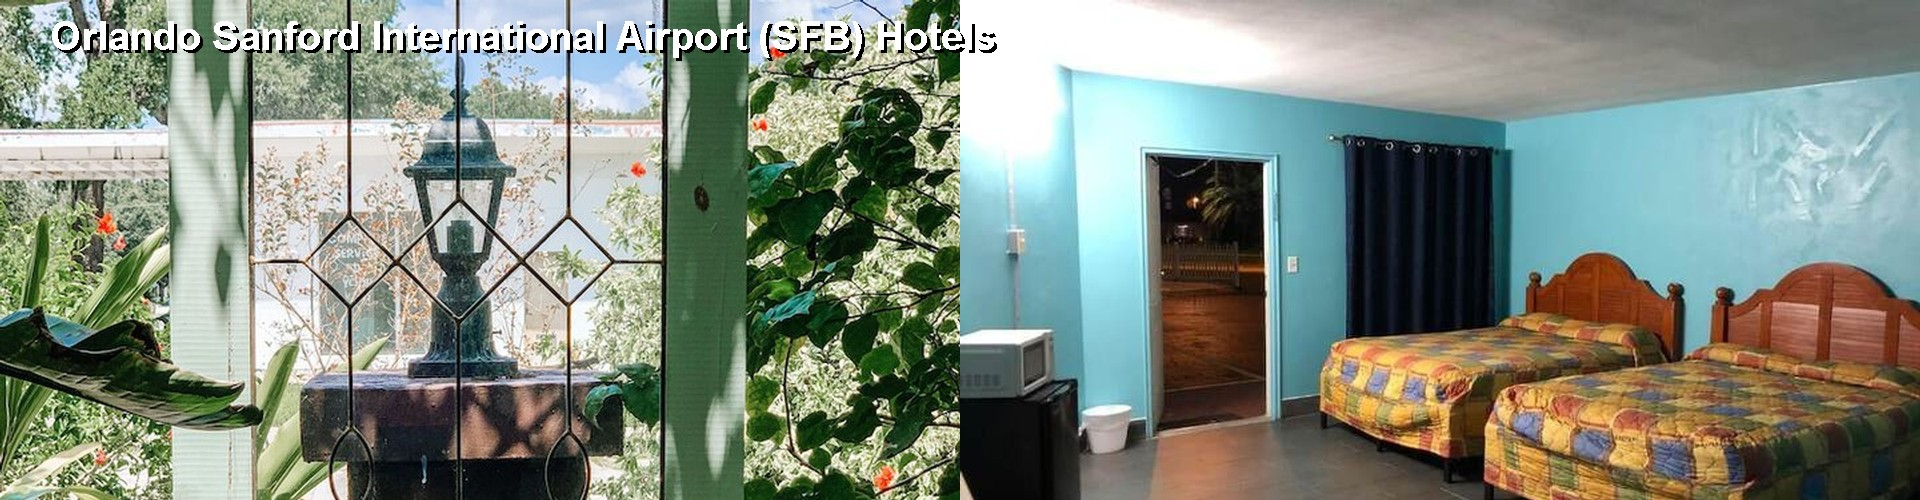 5 Best Hotels near Orlando Sanford International Airport (SFB)